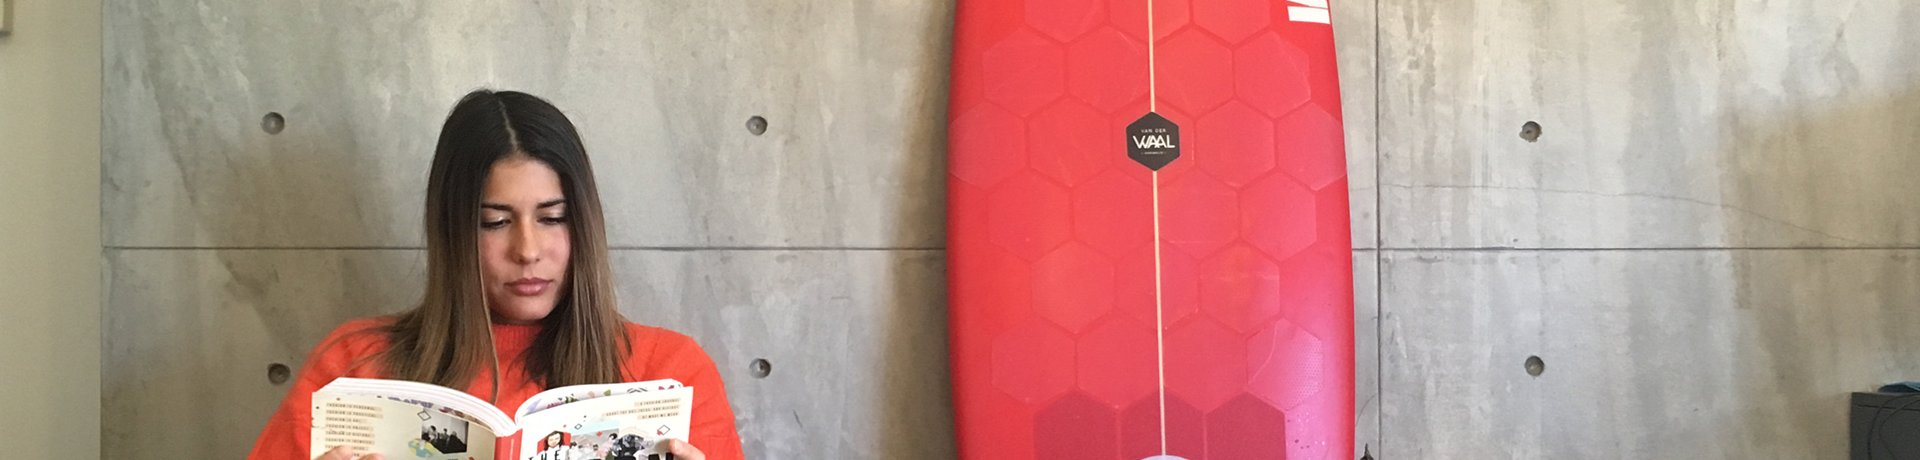 Van der Waal rEvolution Series Surfing